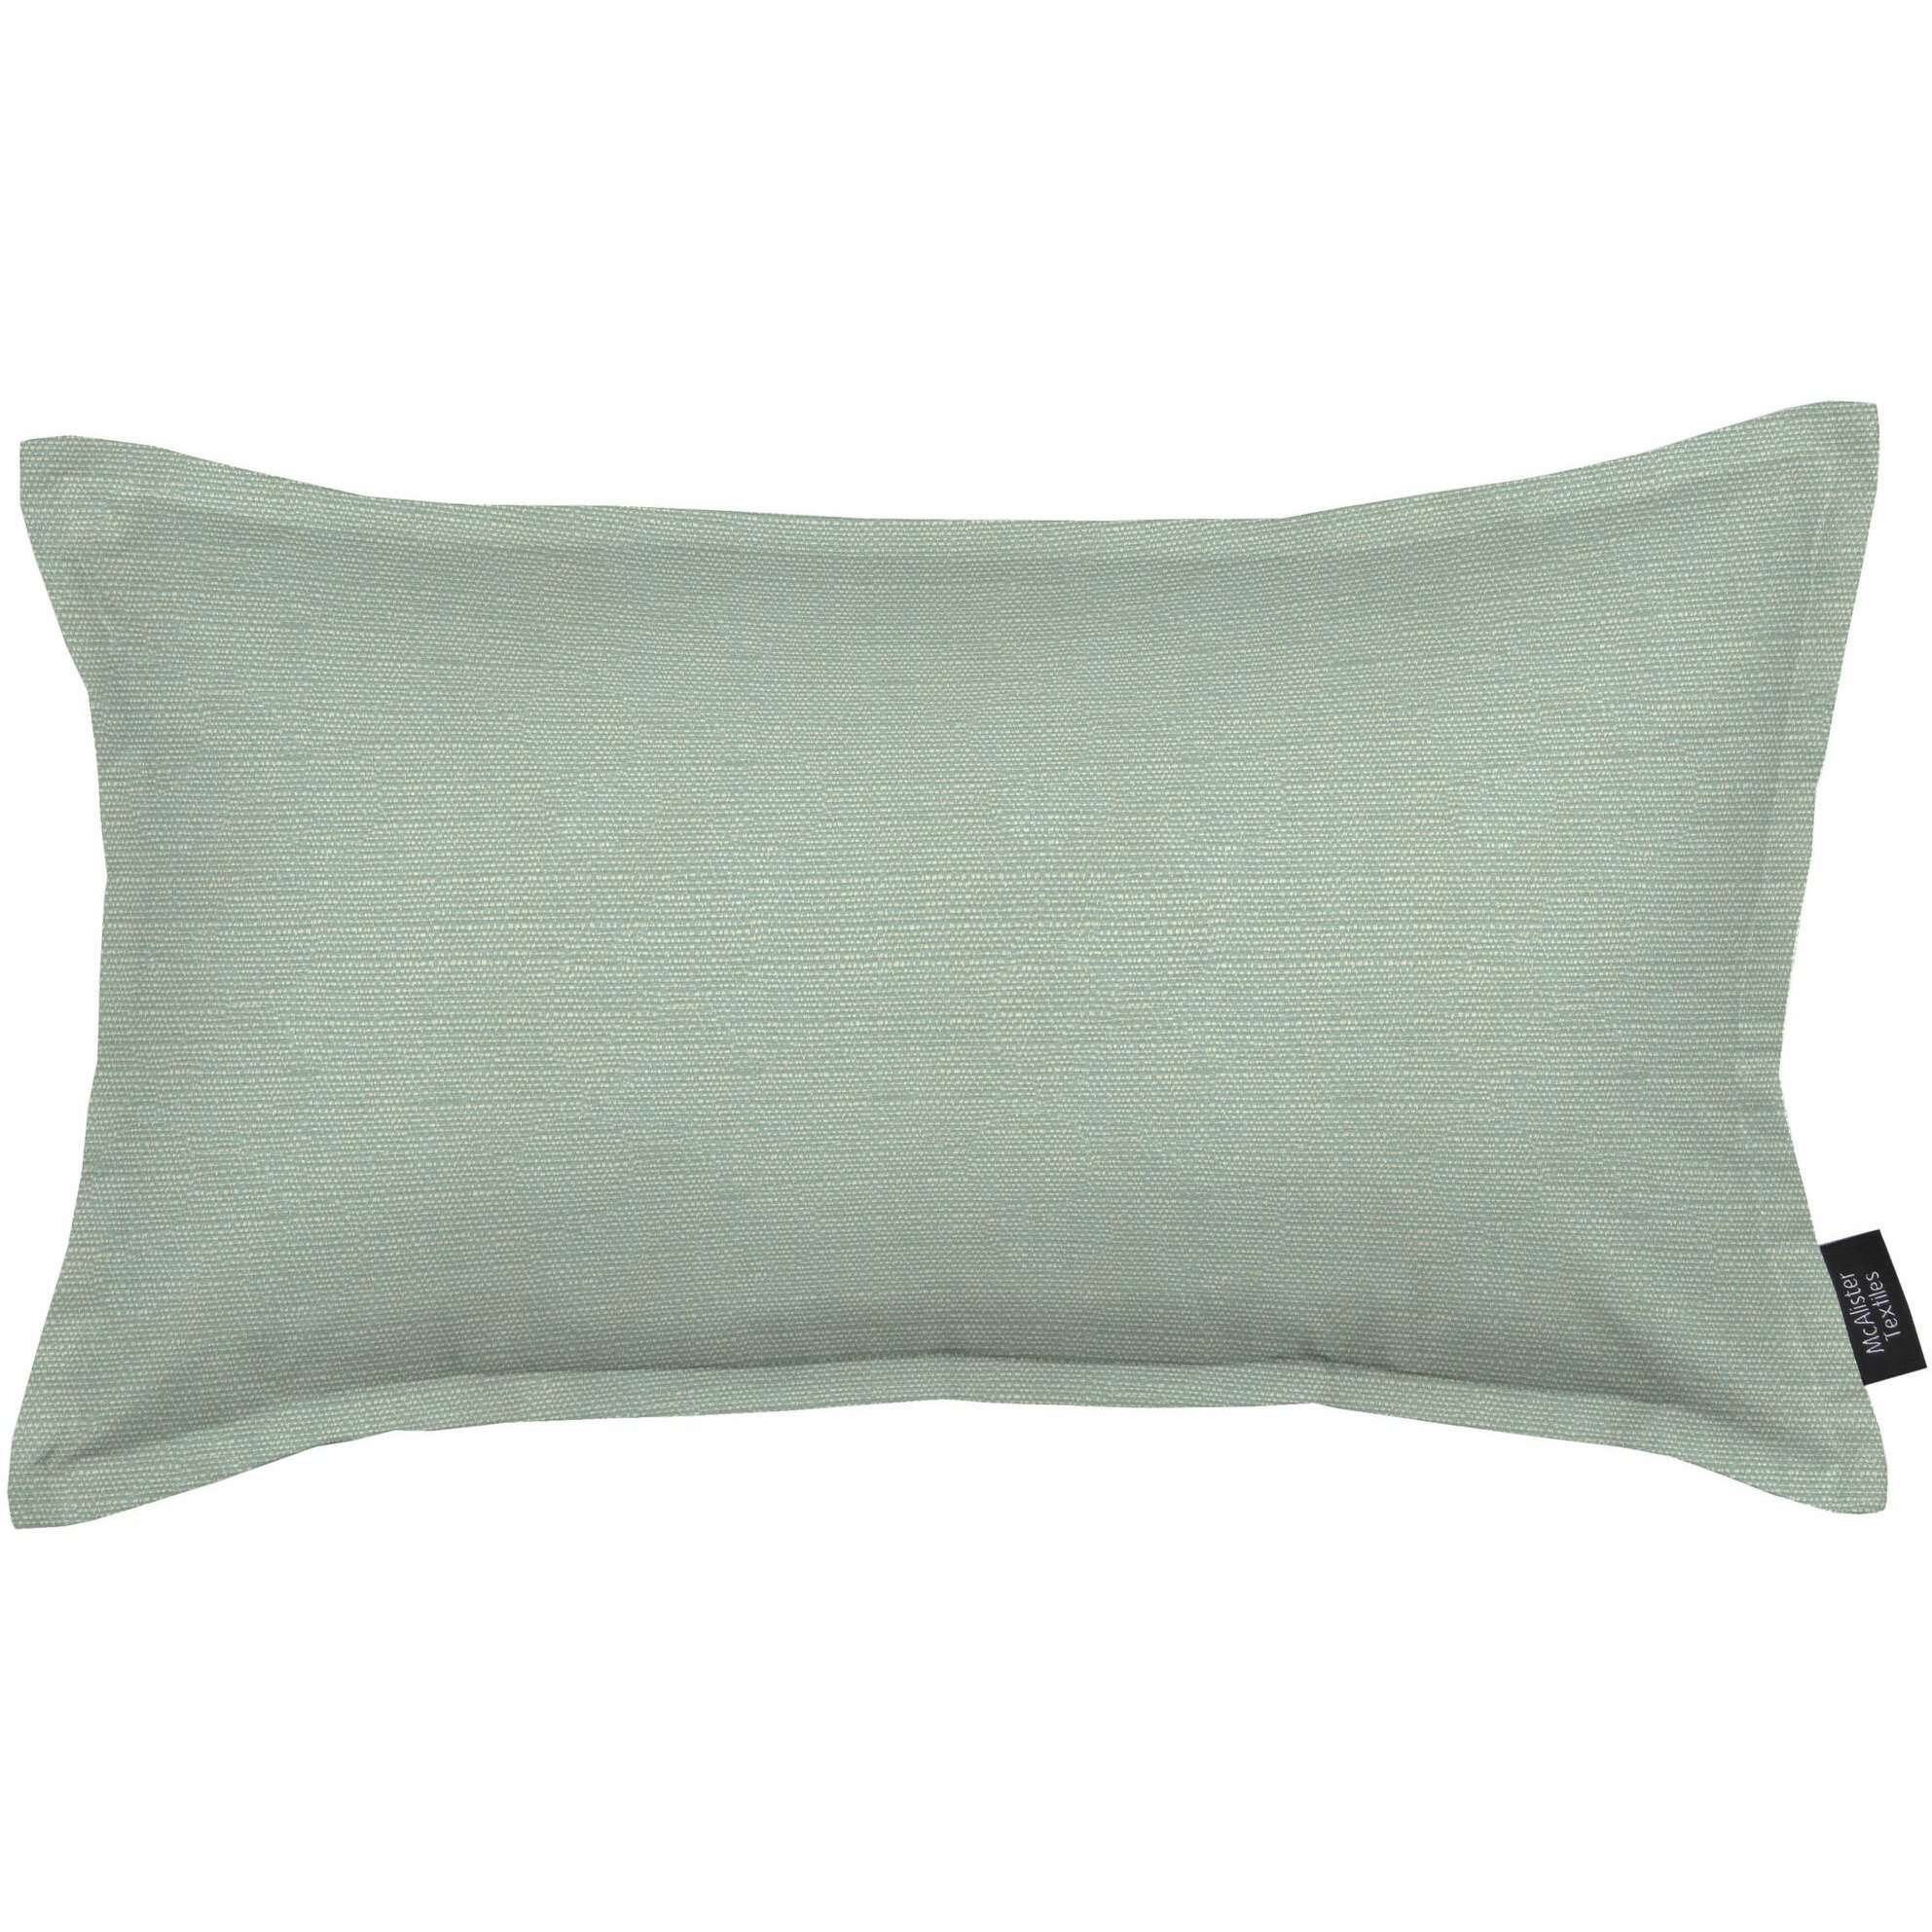 McAlister Textiles Savannah Duck Egg Blue Cushion Cushions and Covers Cover Only 50cm x 30cm